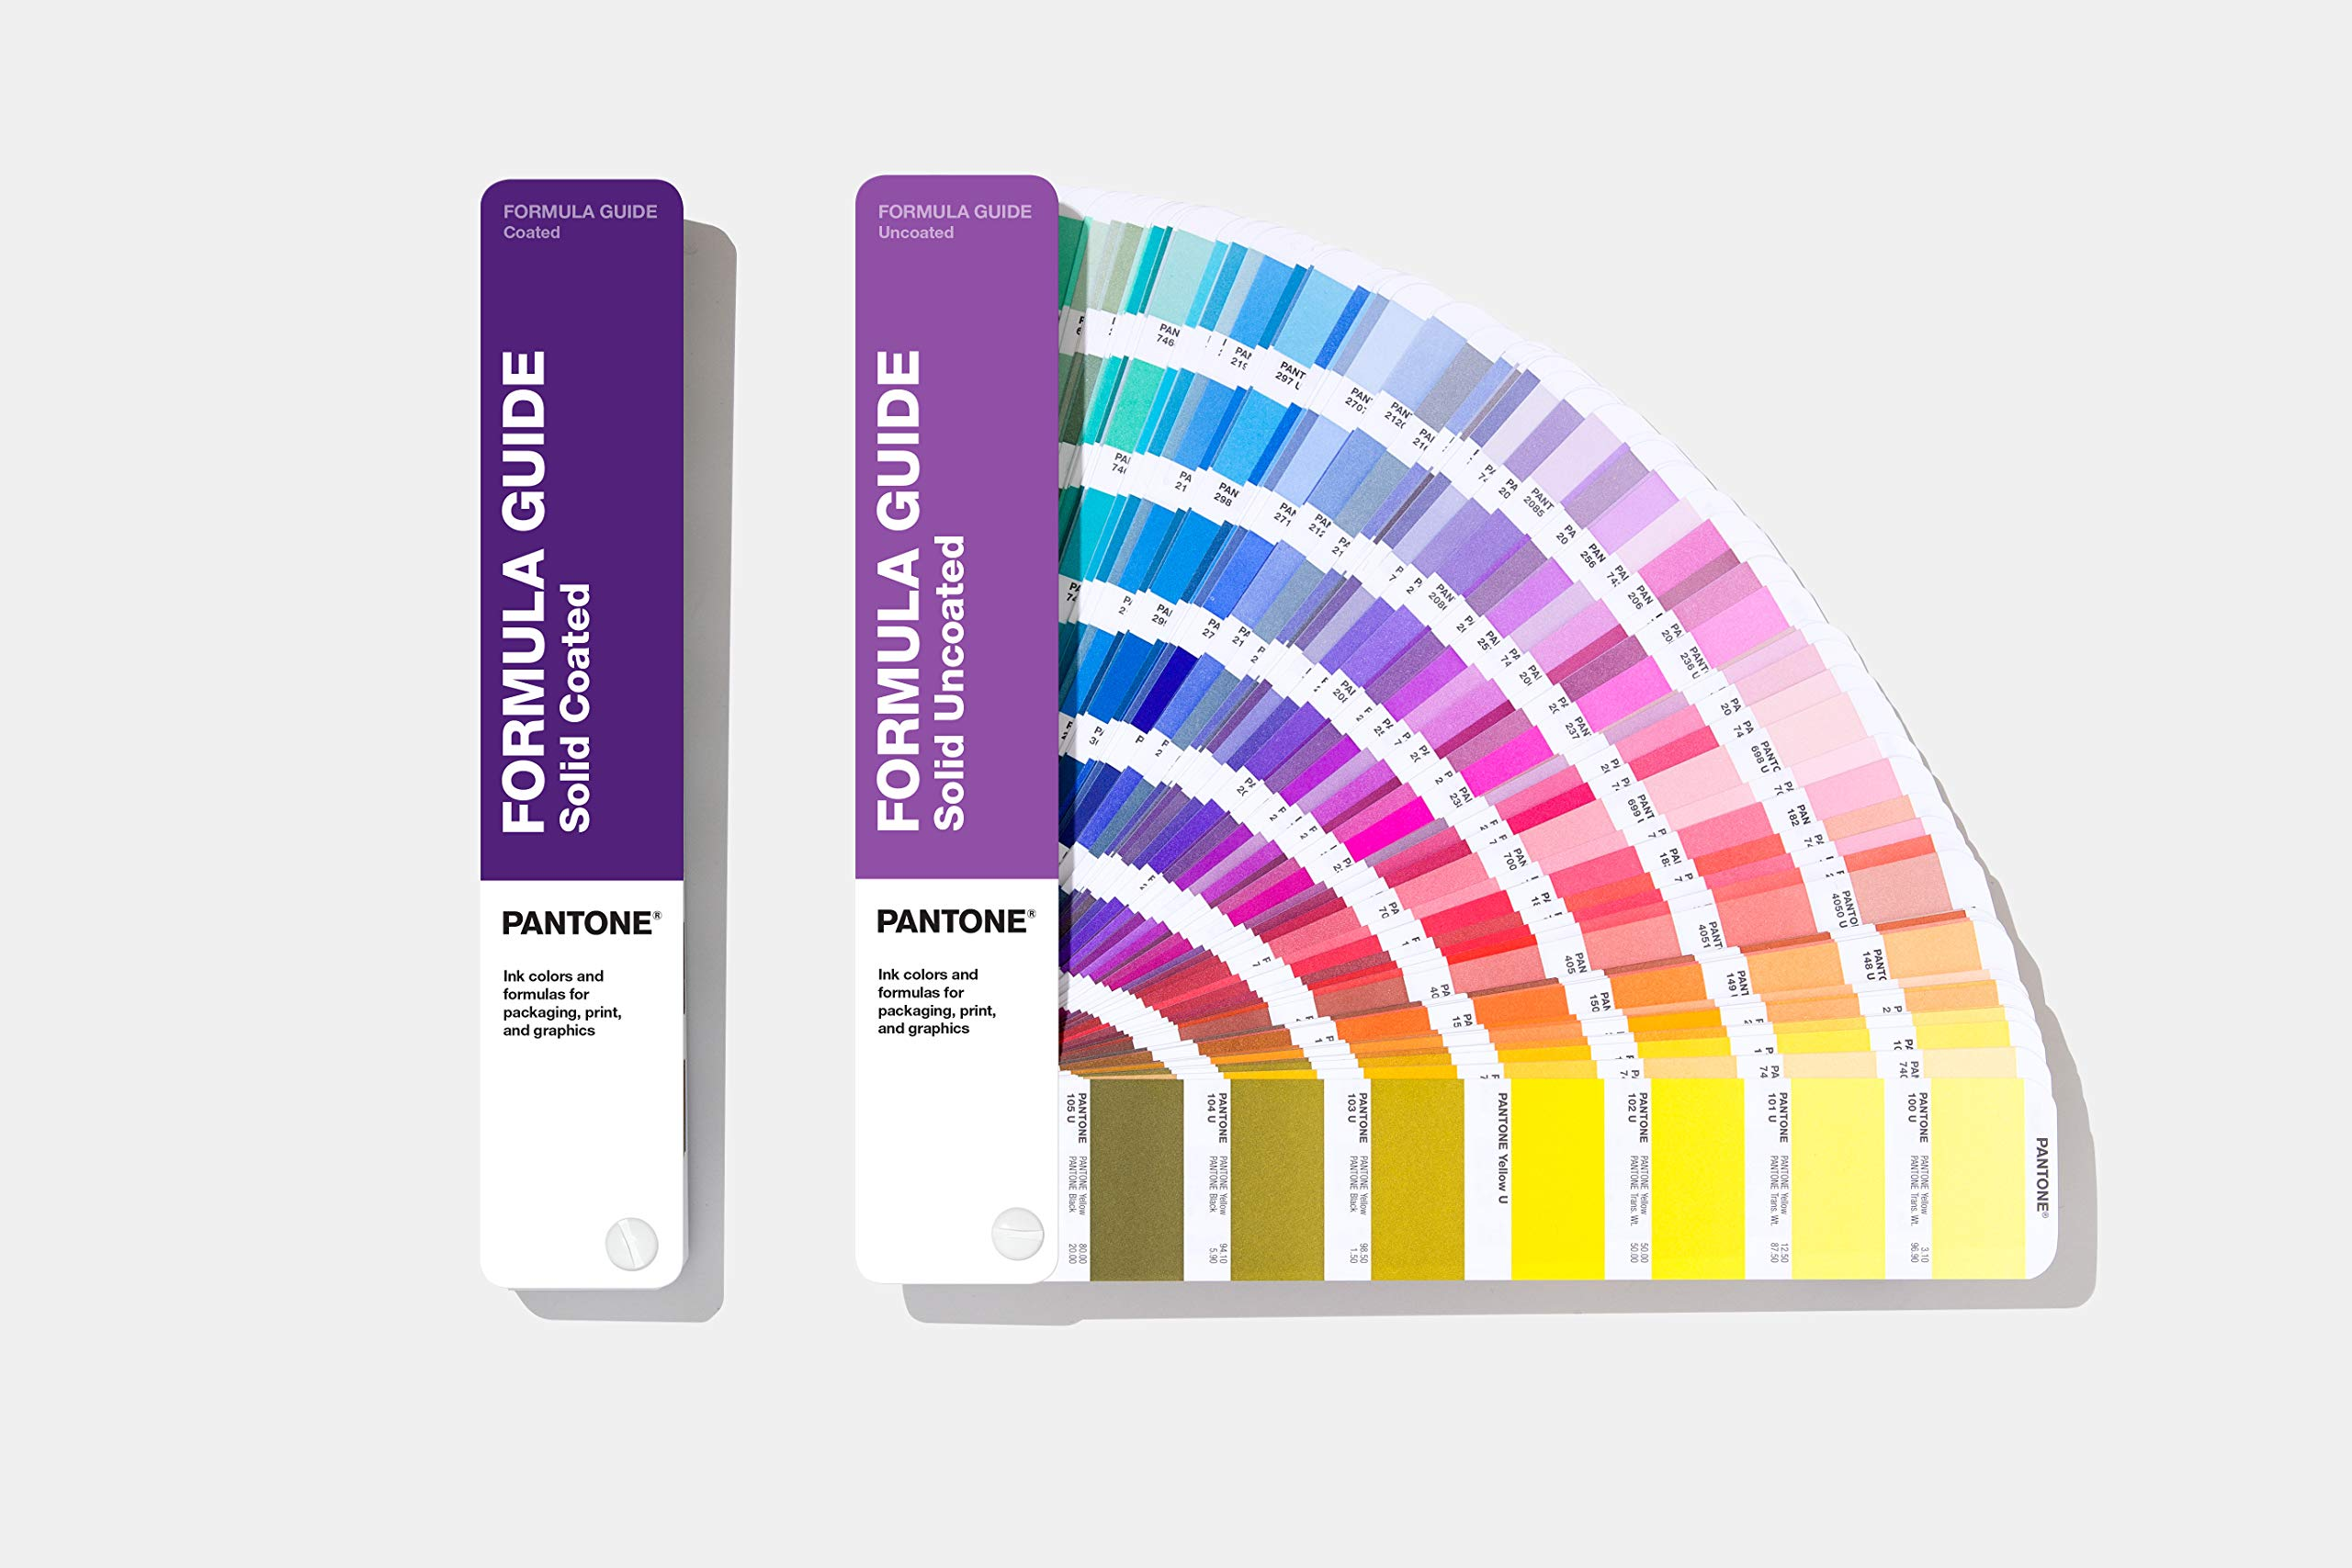 Pantone Formula Guide Set and Color Book, GP1601A, Latest Edition, 294 New Colors, Coated and Uncoated - Color Swatch Book with 2,161 Spot Colors